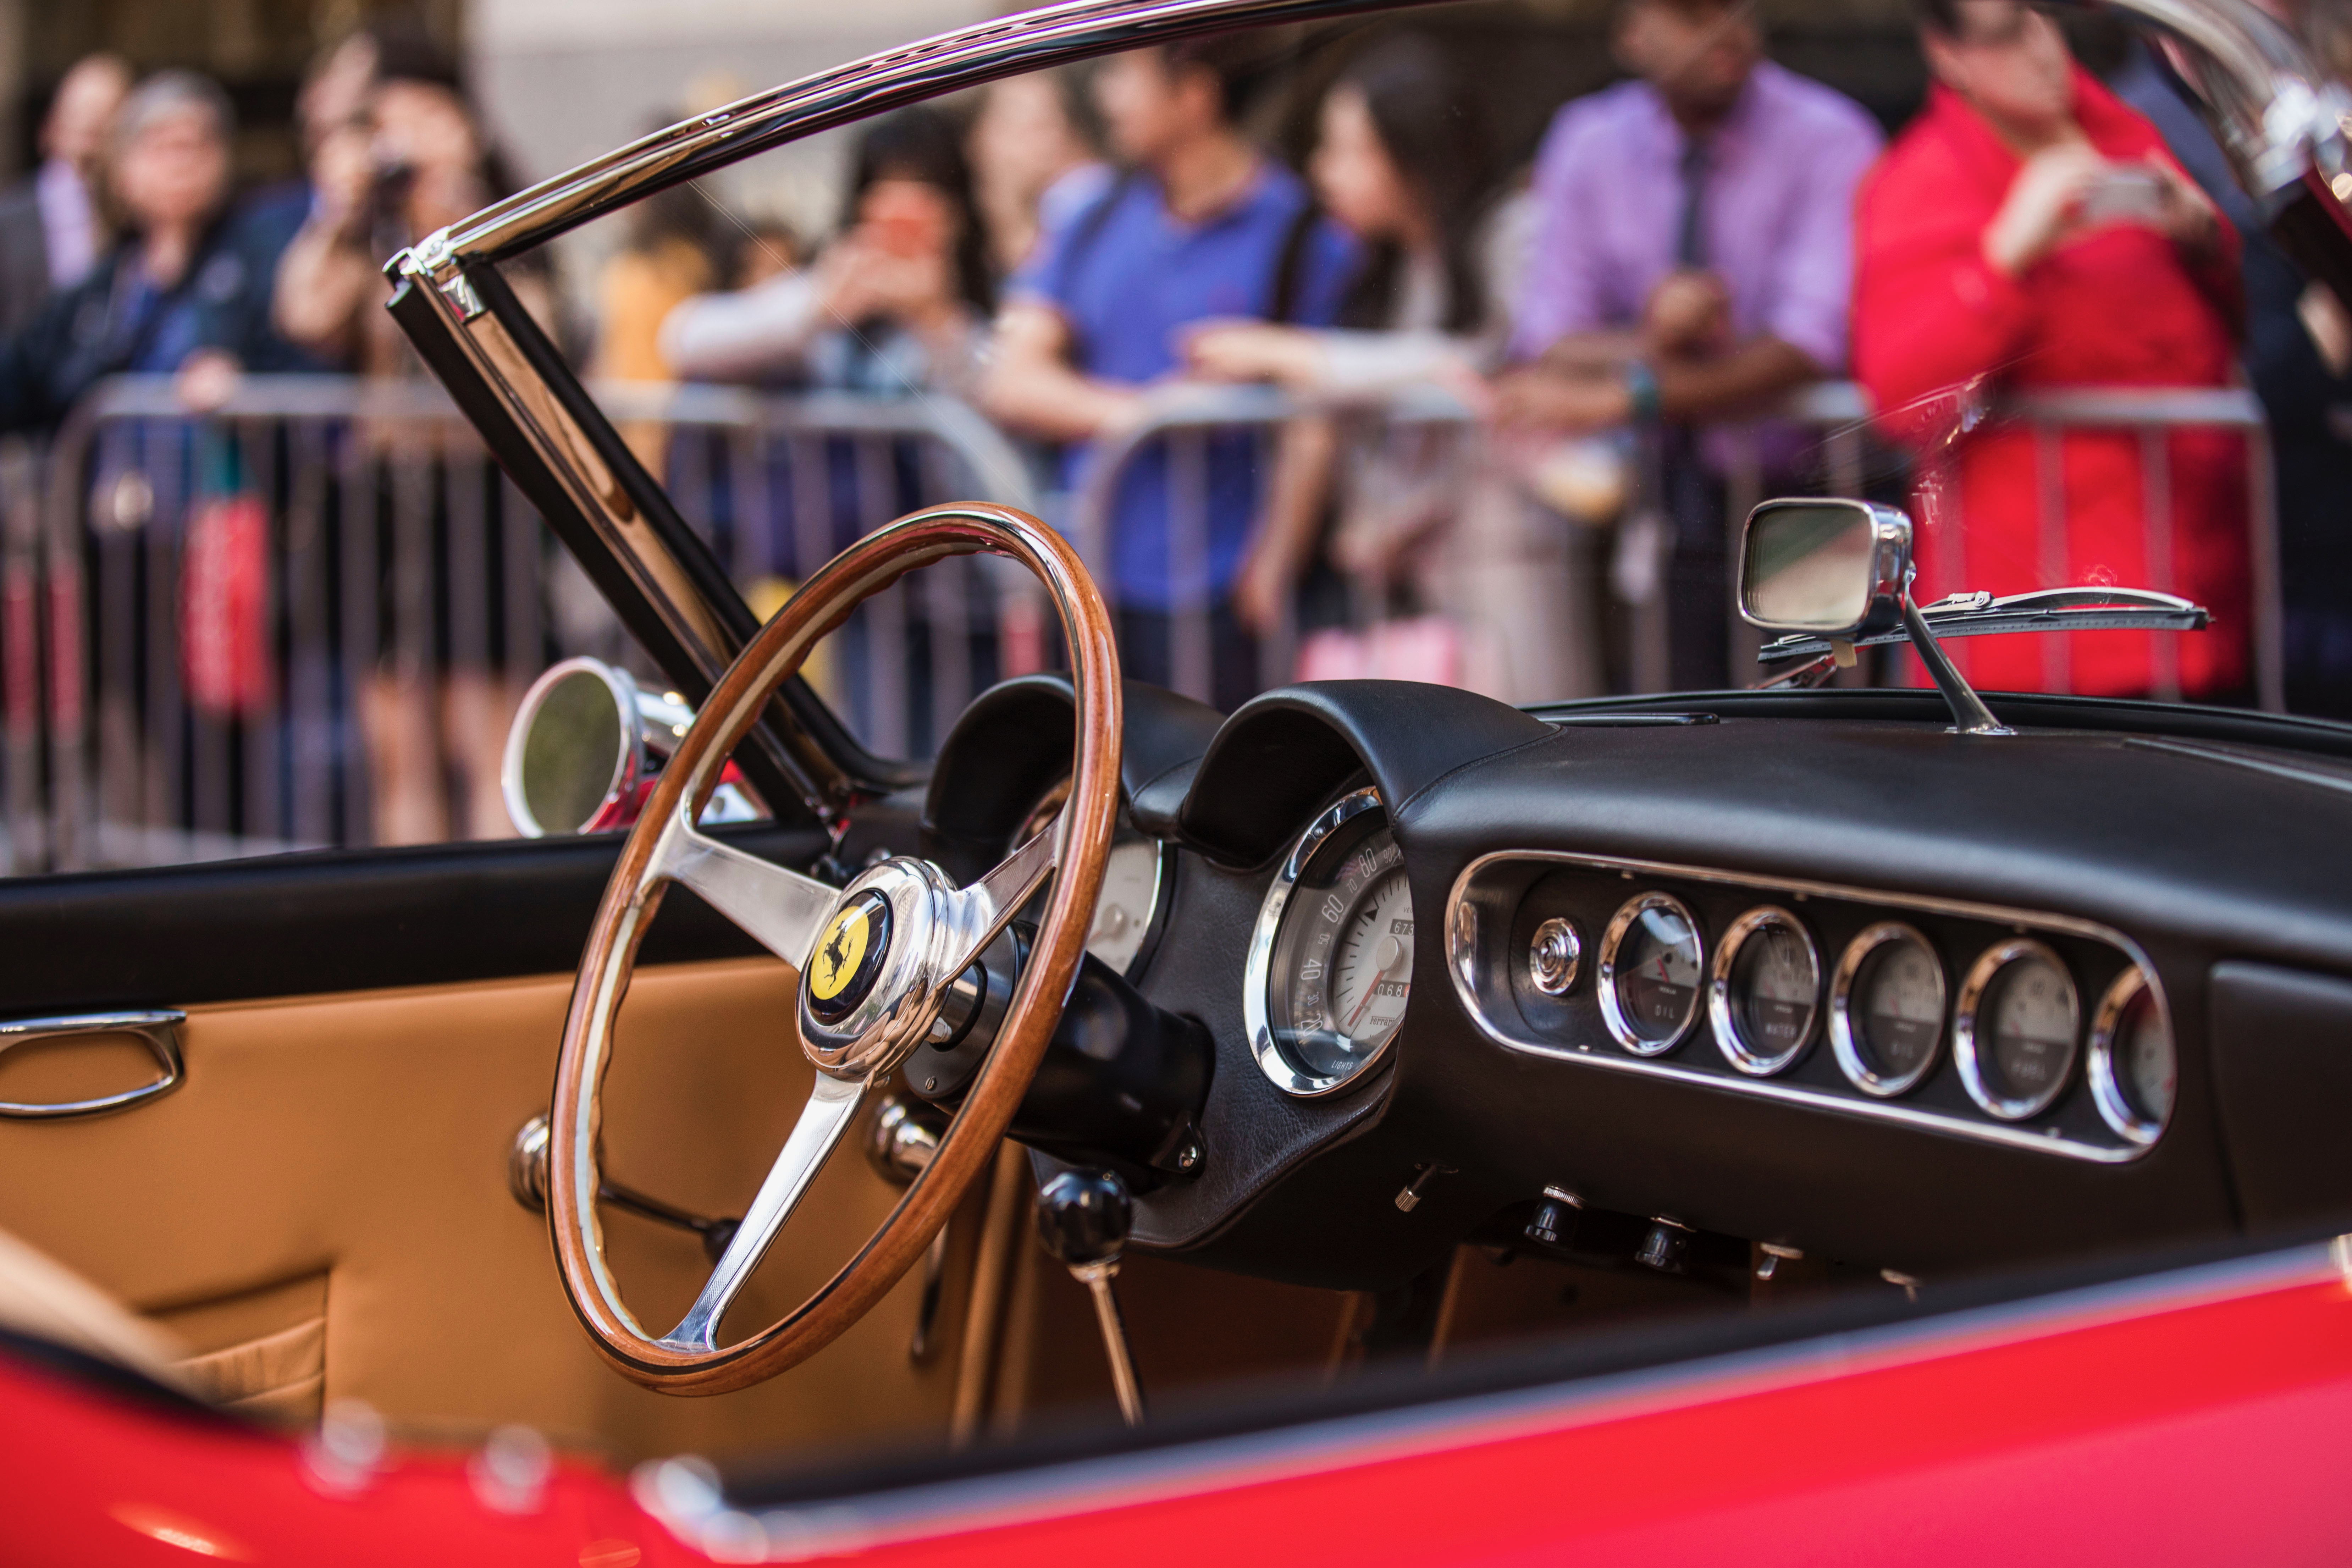 New York Turns Ferrari Red For Birthday Celebration ClassicCars - Classic car show nyc